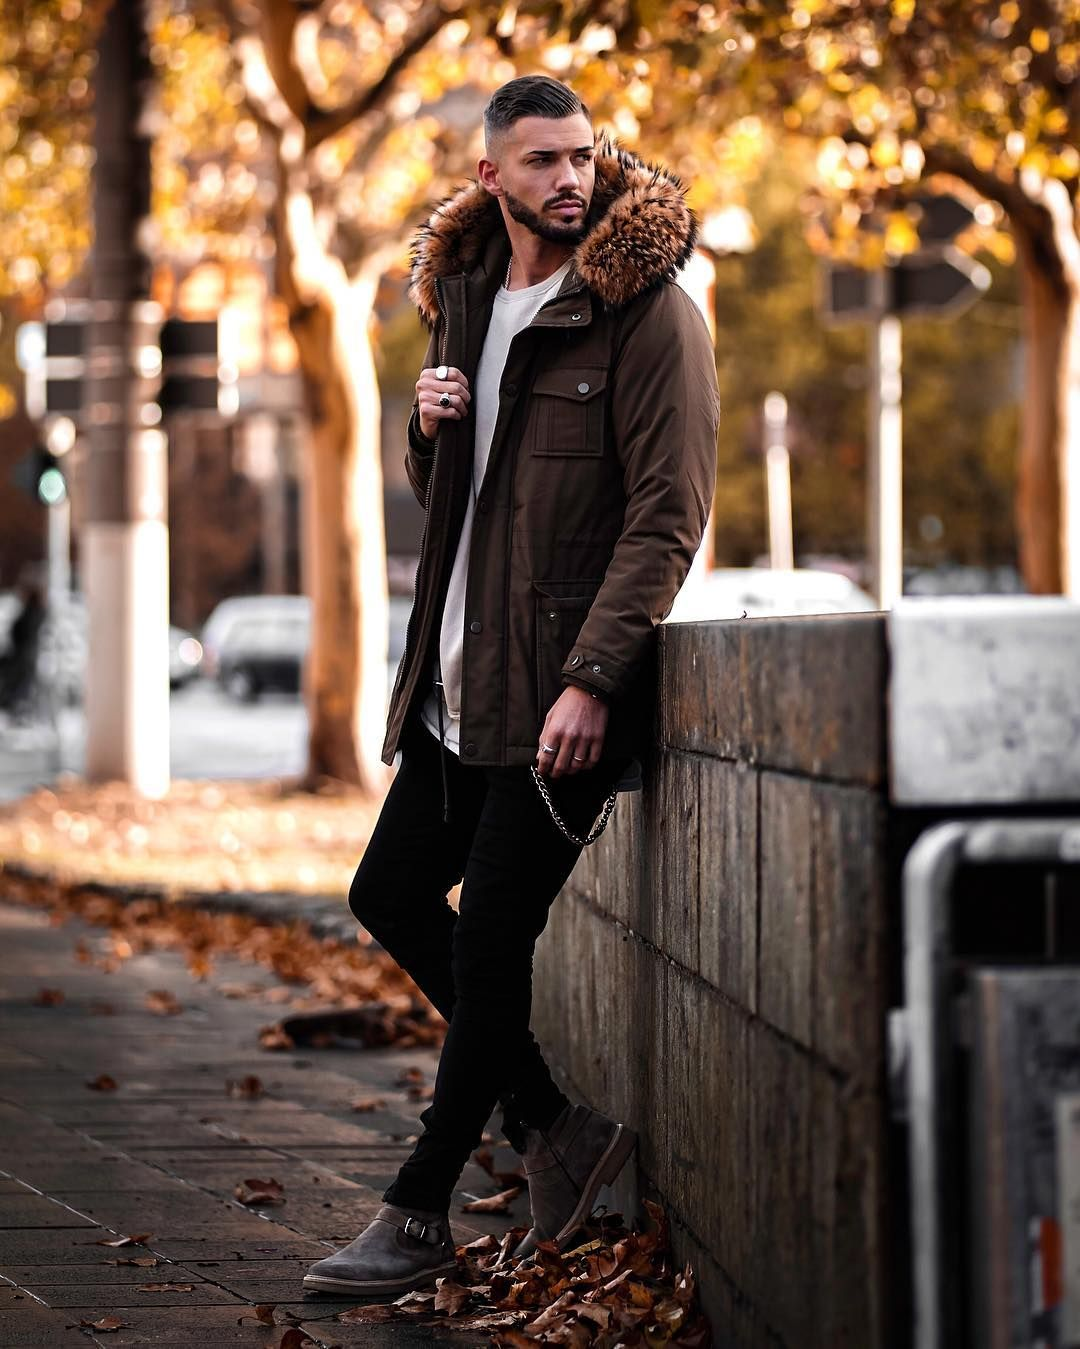 Fio On Instagram It Is Finally Cold In Germany  E D  The Winter Parkas By Venuefashion Are Perfect For The Cold Winter Days Wish You All A Nice Evening